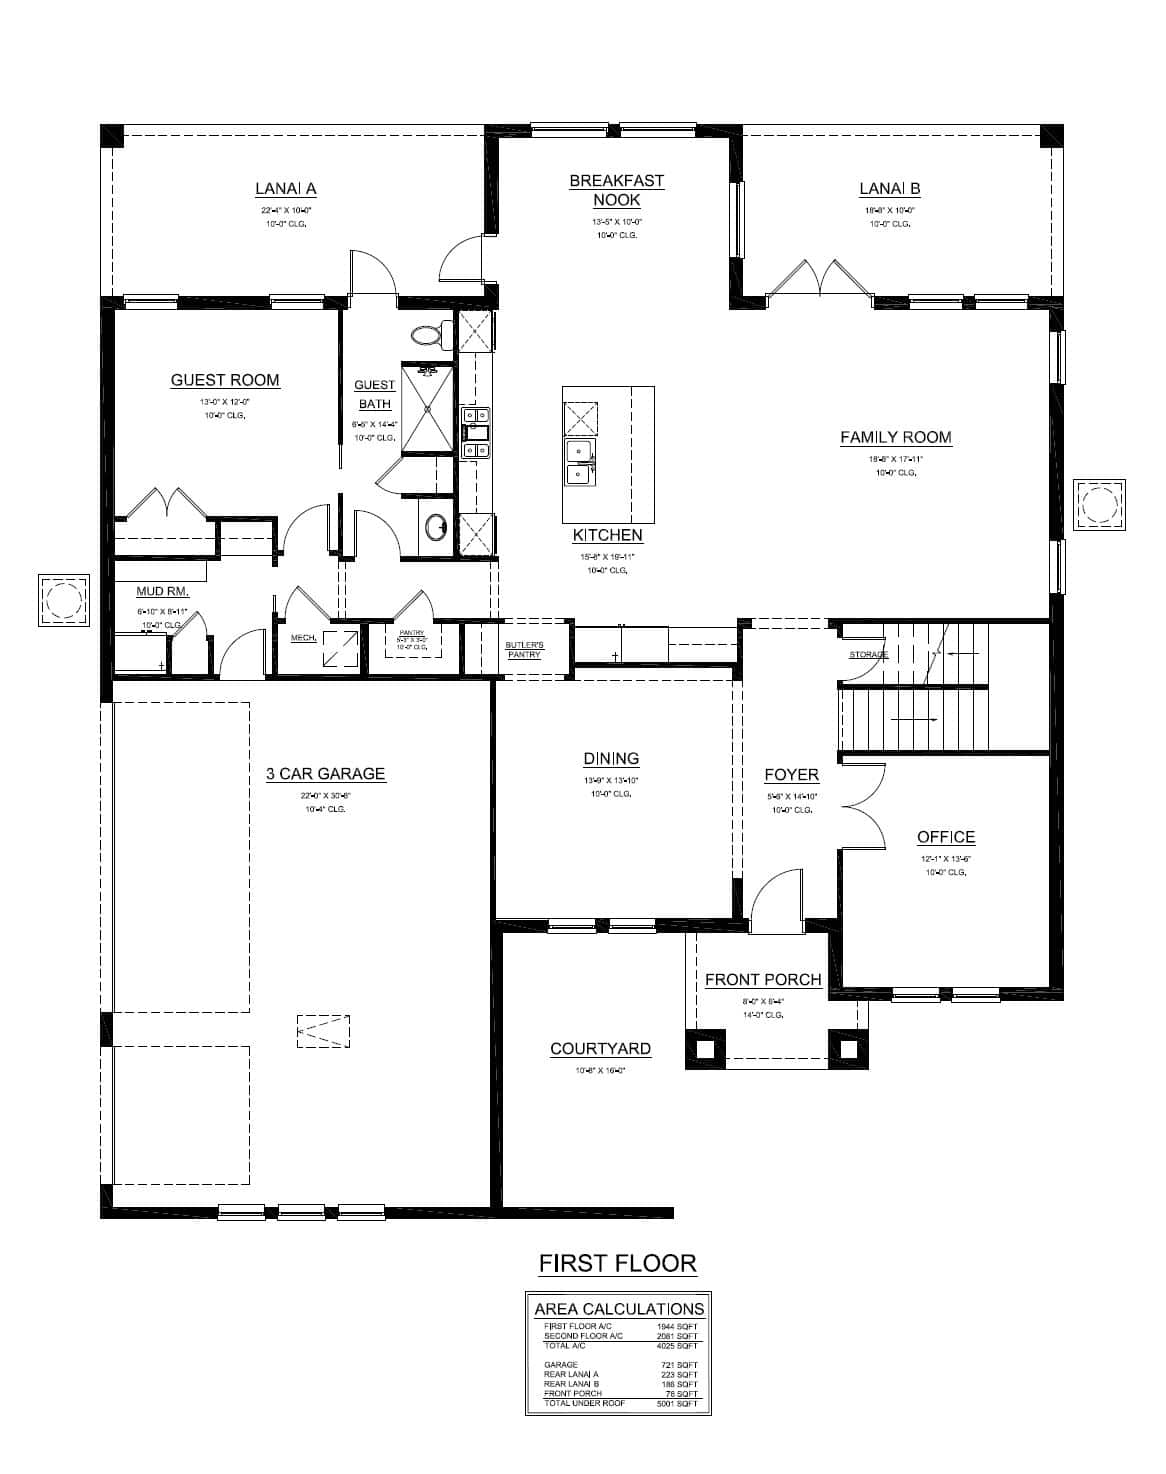 St george turain signature homes for Signature house plans